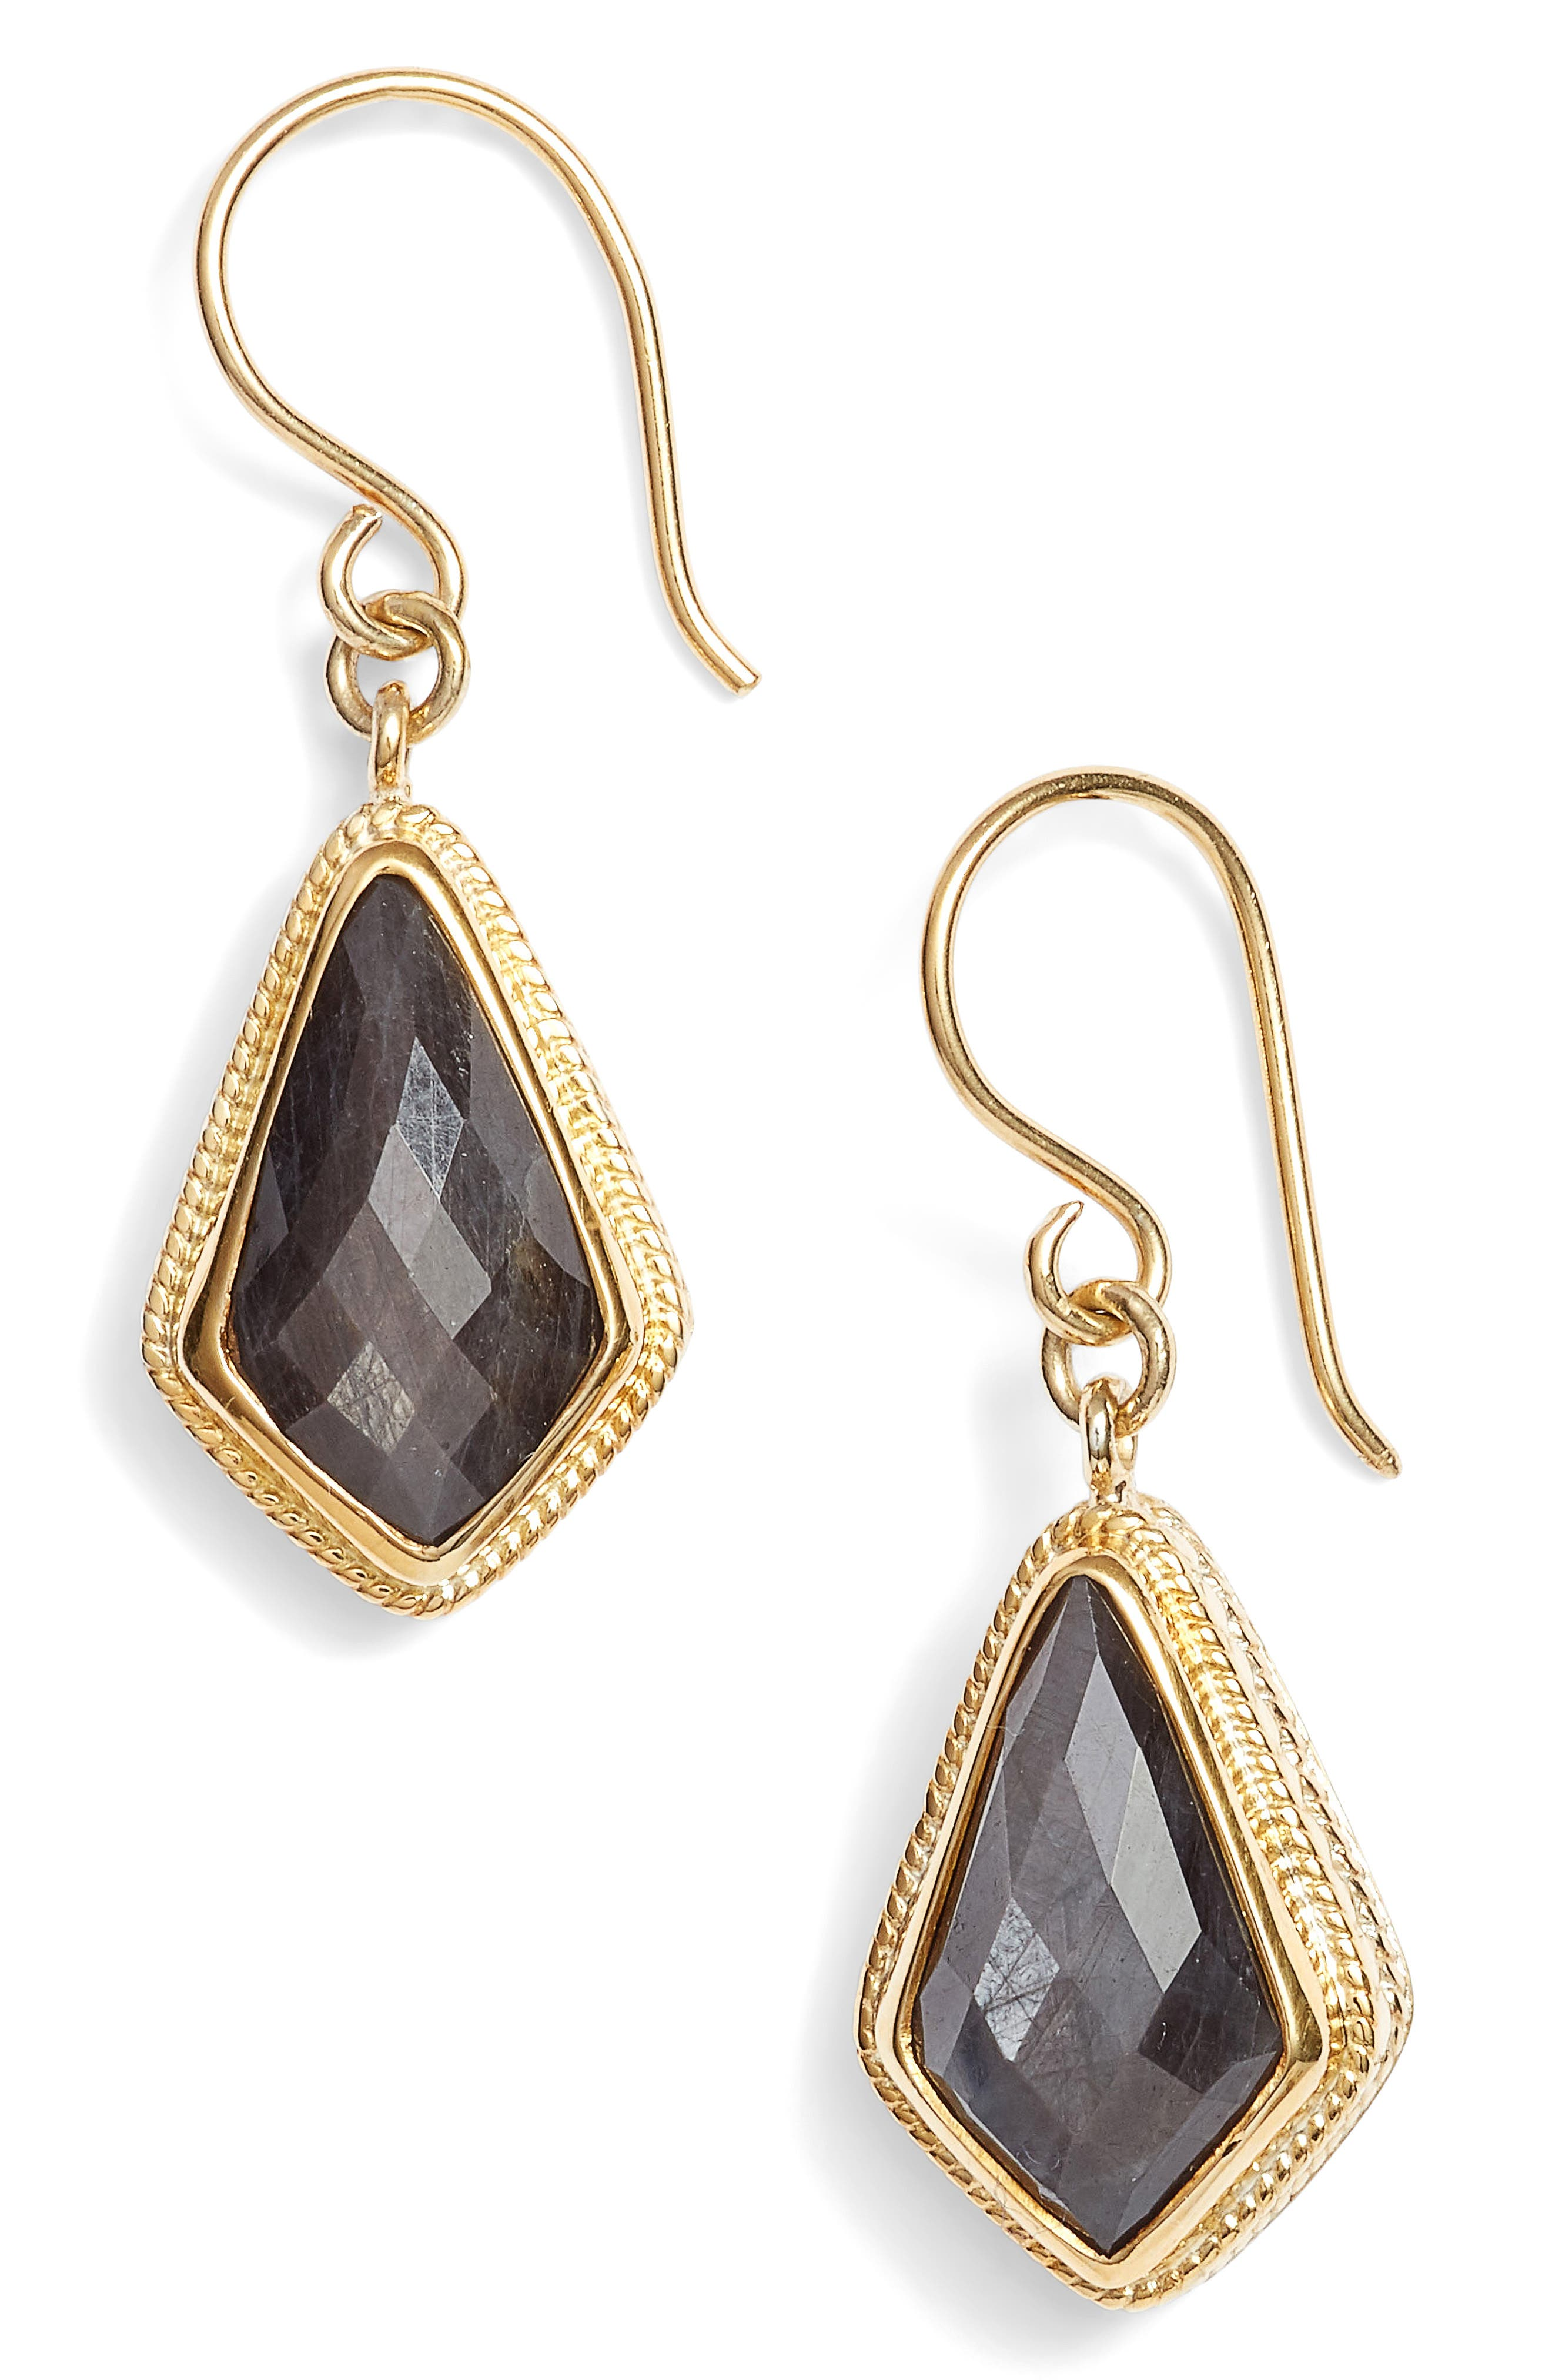 Grey Sapphire Kite Earrings,                         Main,                         color, Gold/ Silver/ Grey Sapphire